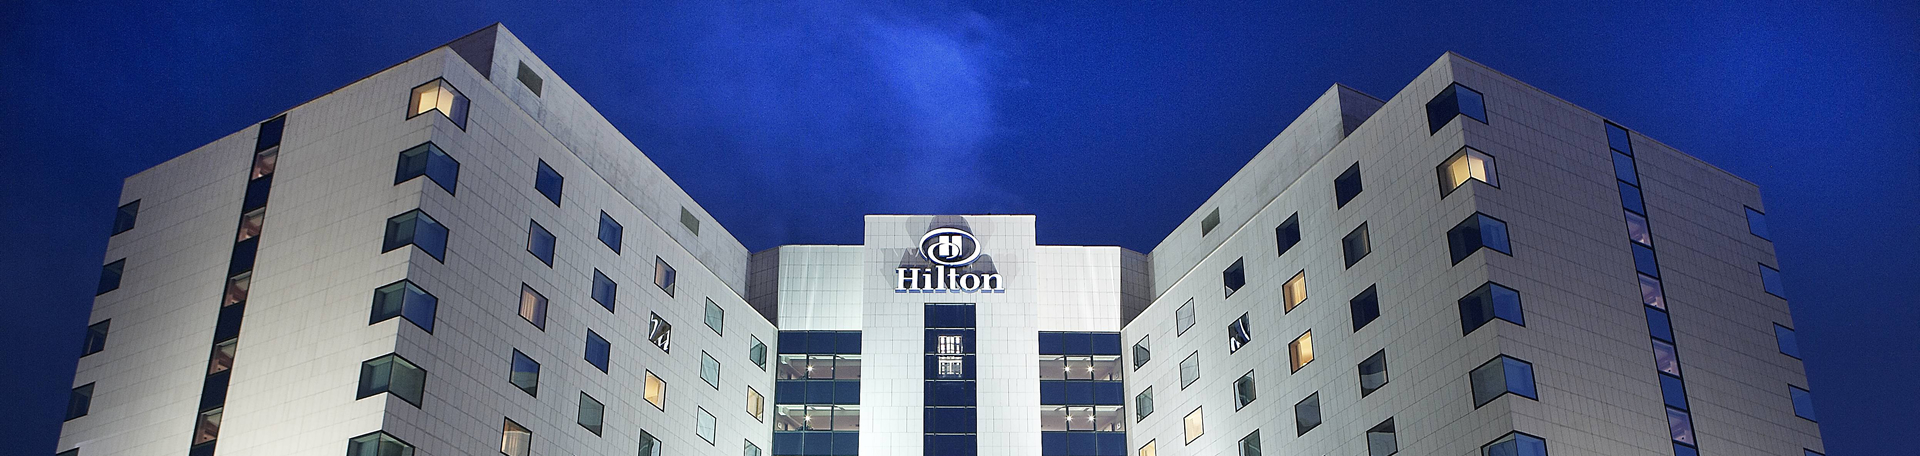 hilton_header_home_1_1920x456_crop_and_resize_to_fit_478b24840a